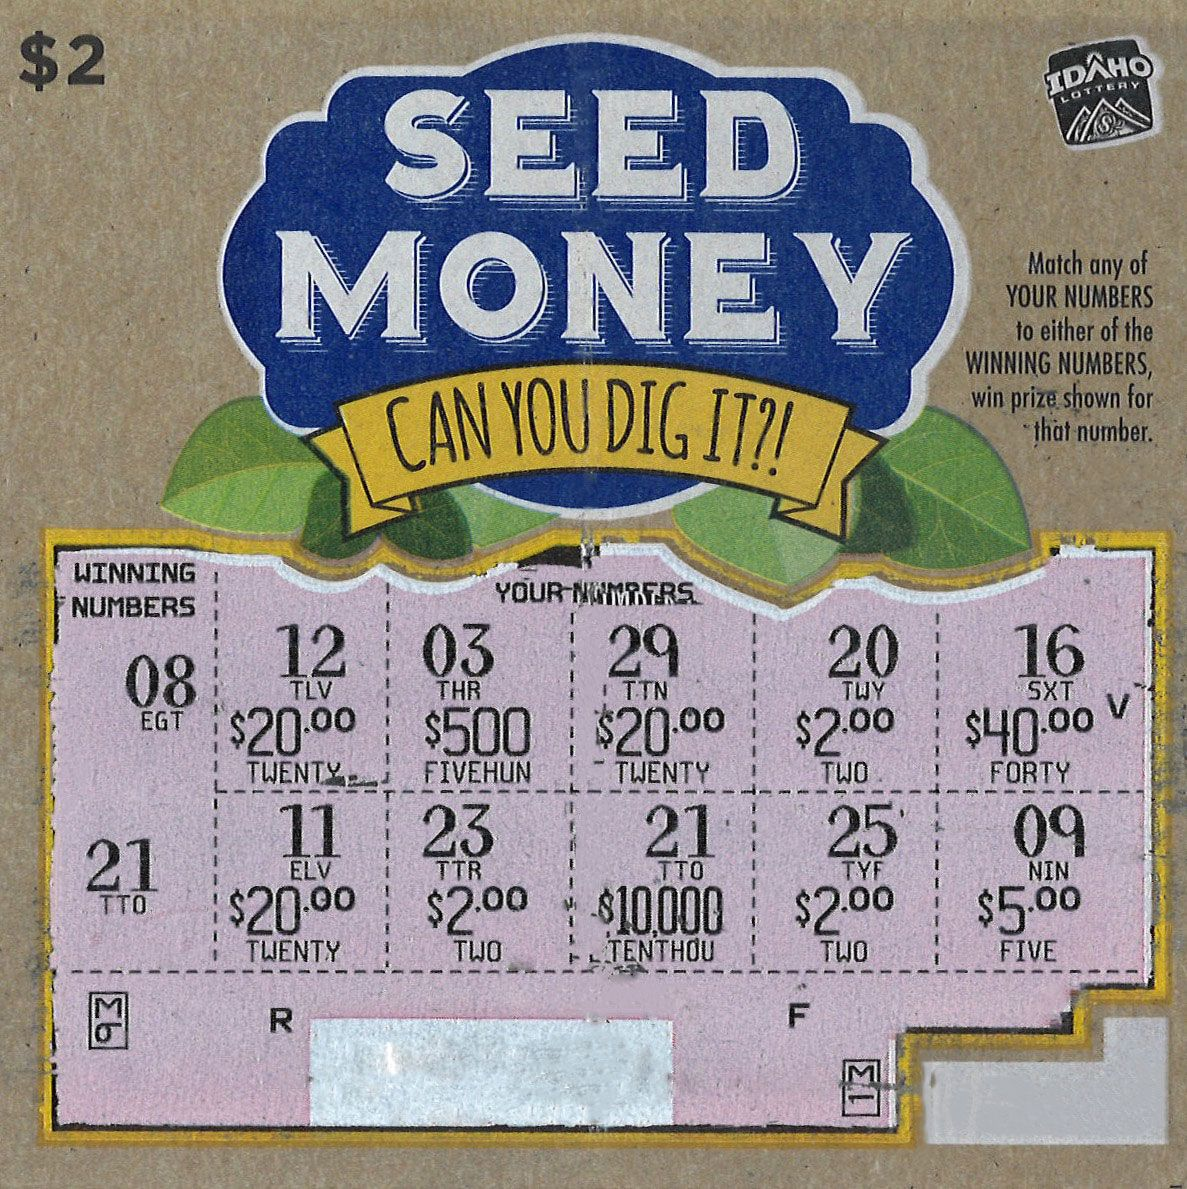 10 000 Winner On Seed Money Ticket Was Purchased In Boise With